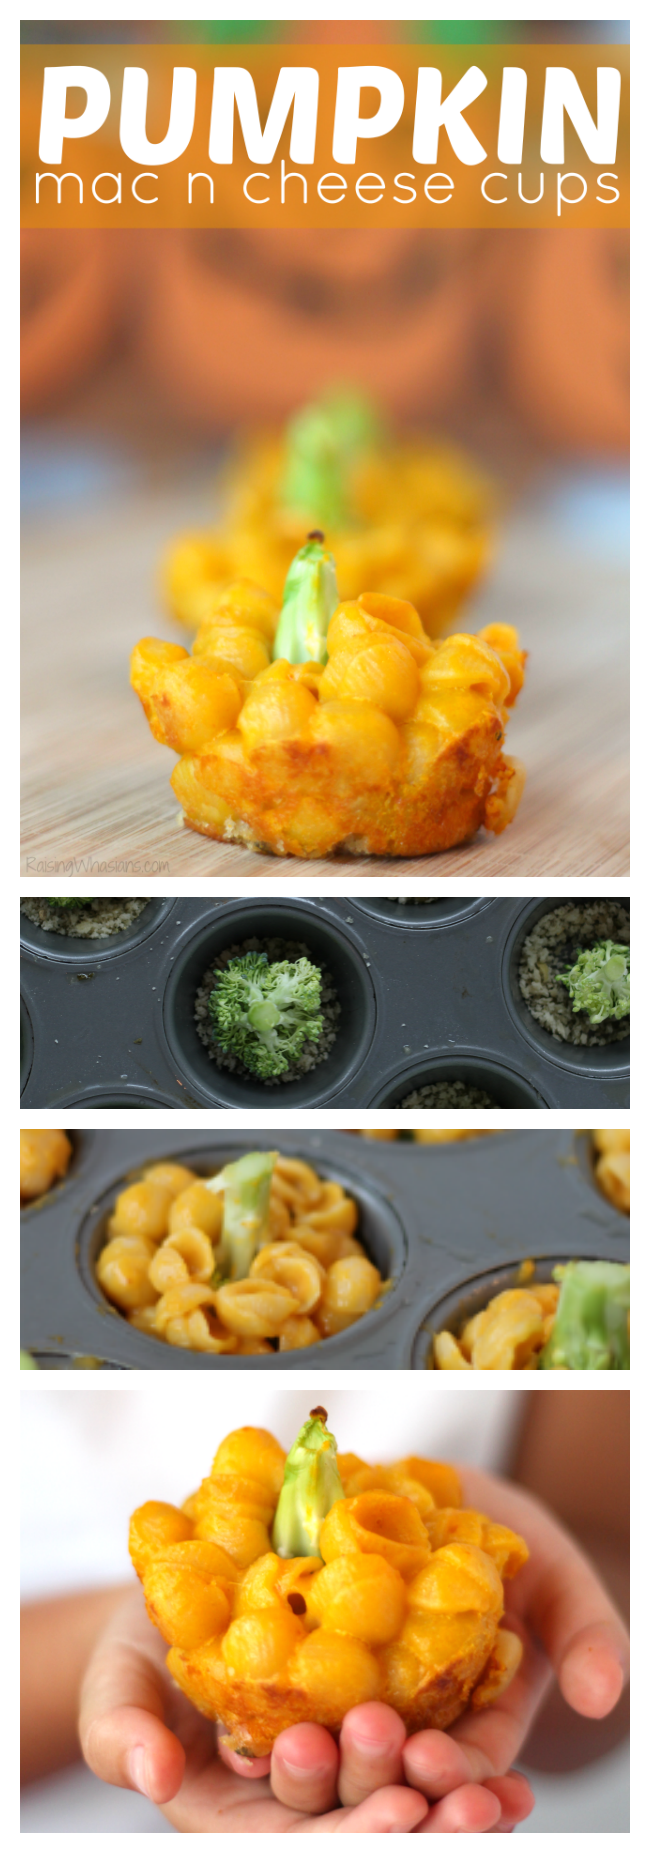 Pumpkin mac n cheese cups pinterest